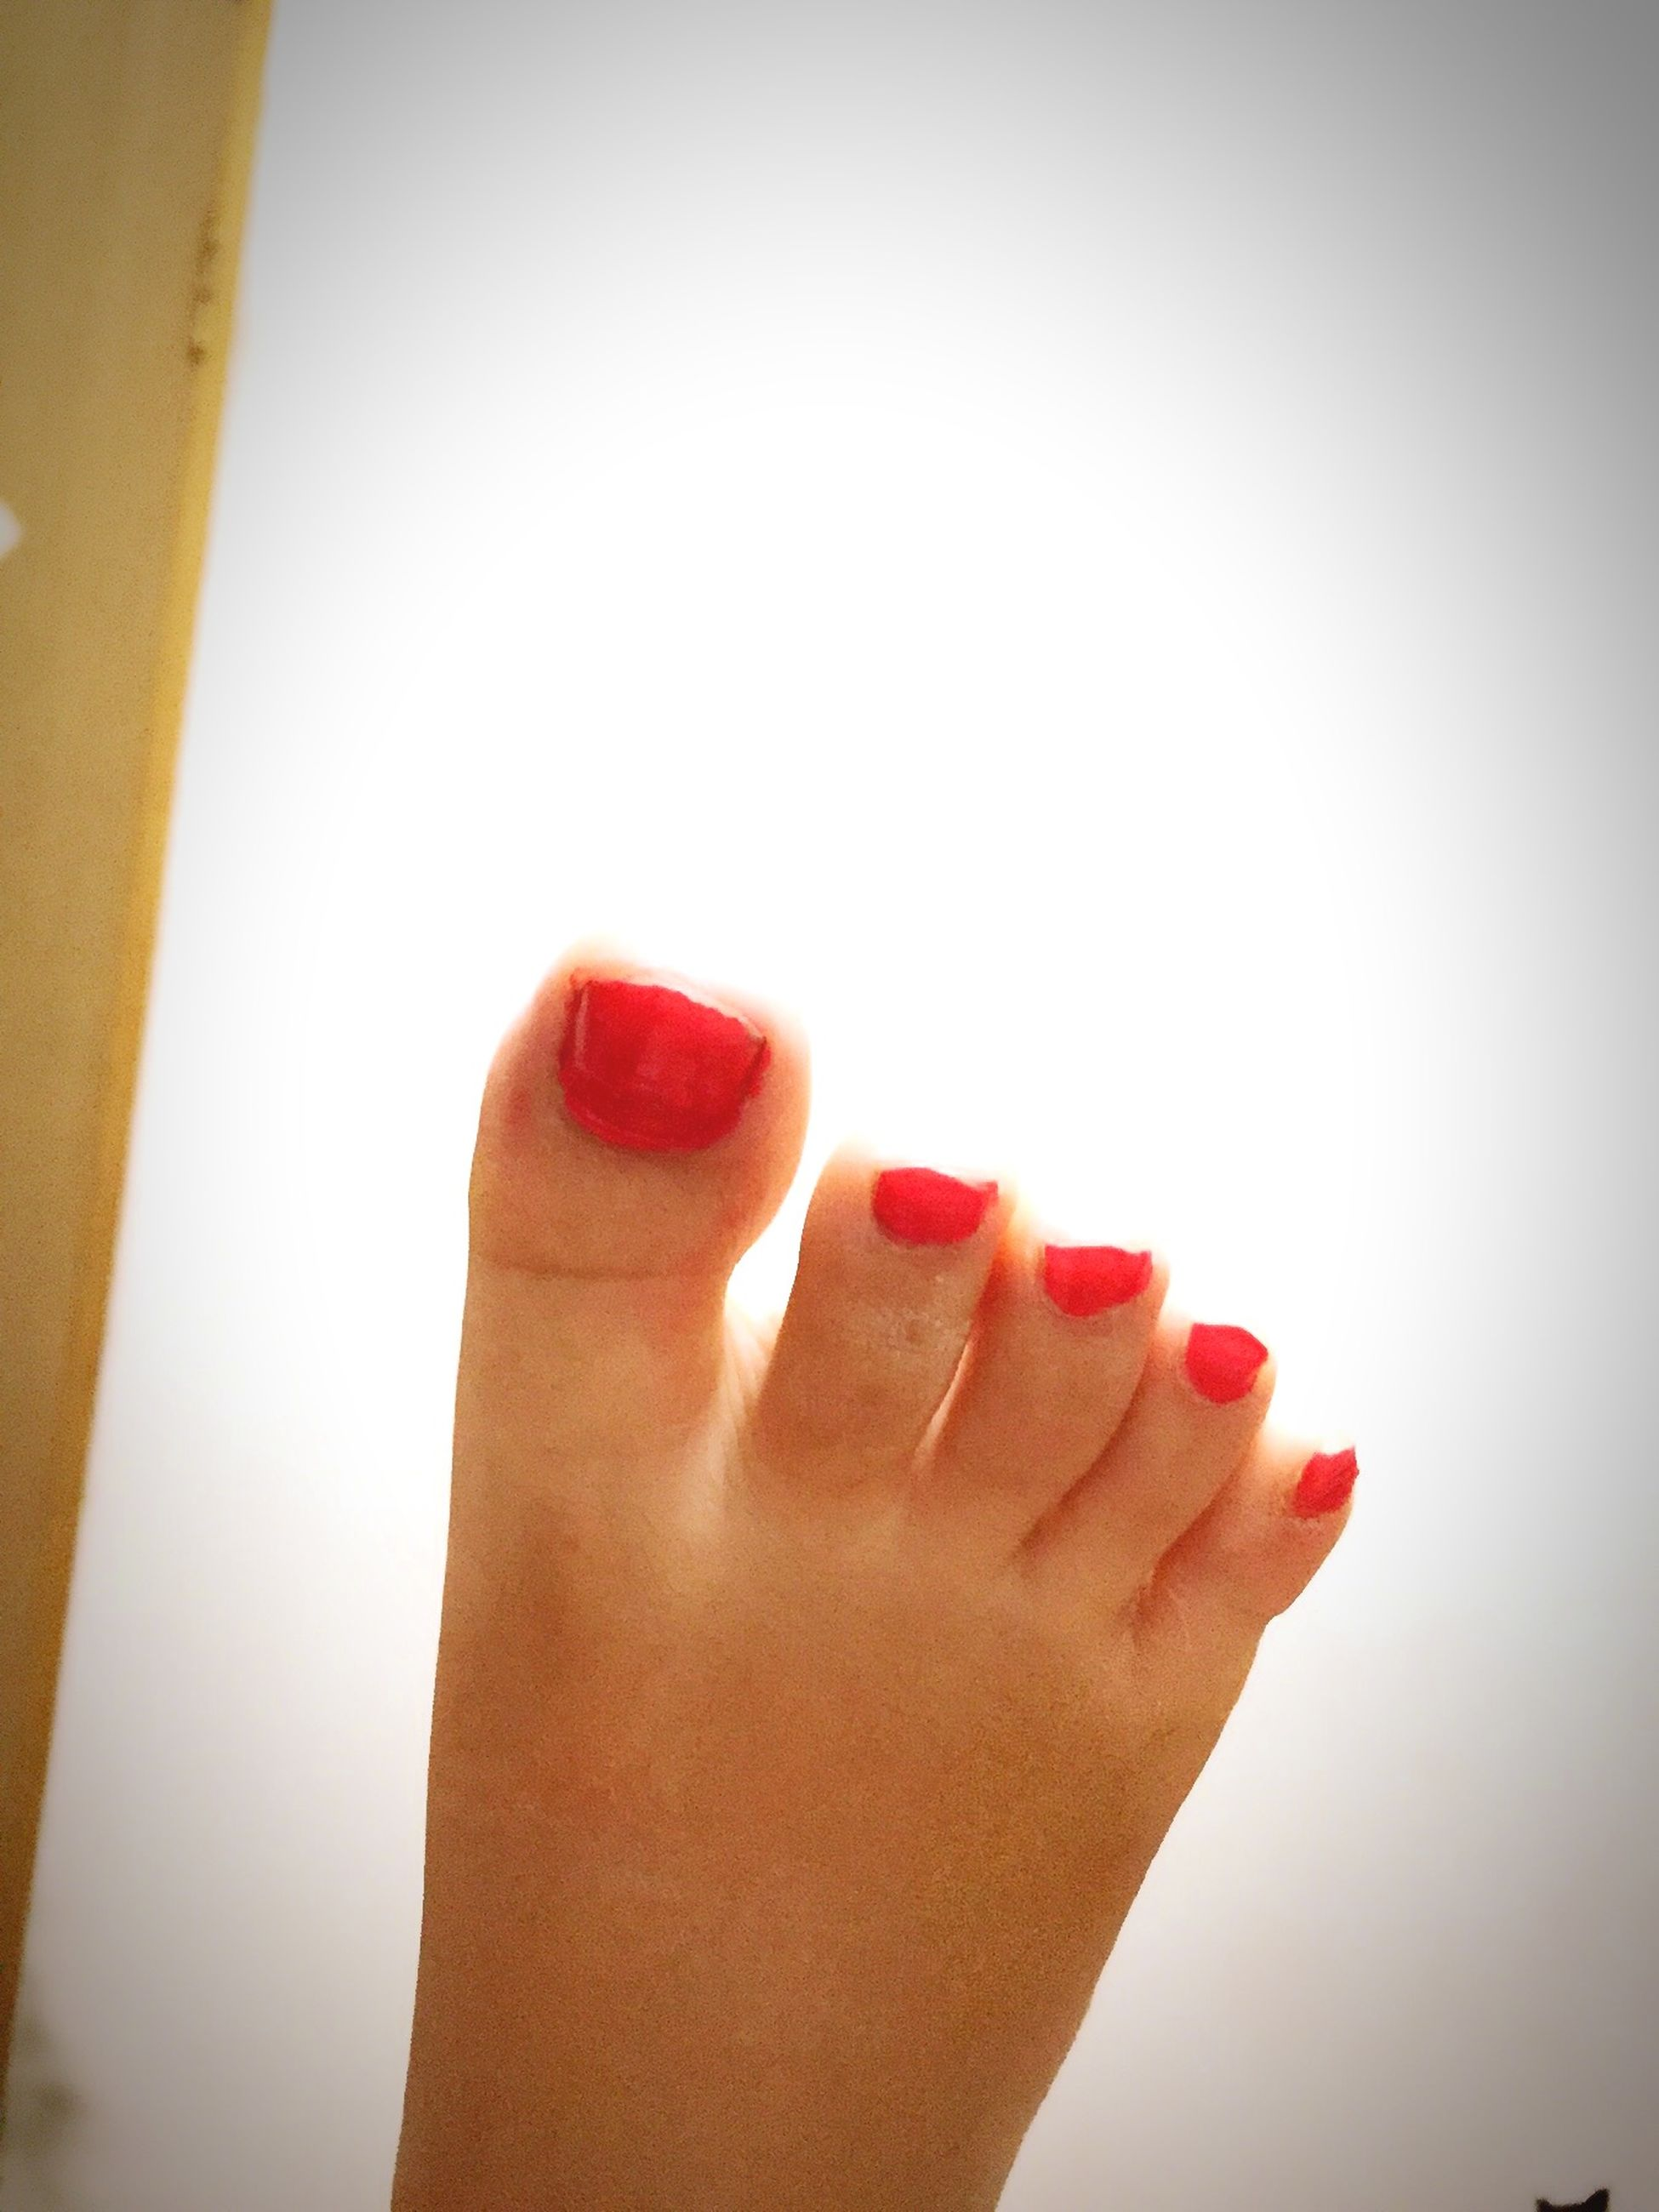 person, part of, cropped, holding, human finger, copy space, personal perspective, close-up, unrecognizable person, red, studio shot, white background, freshness, nail polish, food and drink, focus on foreground, showing